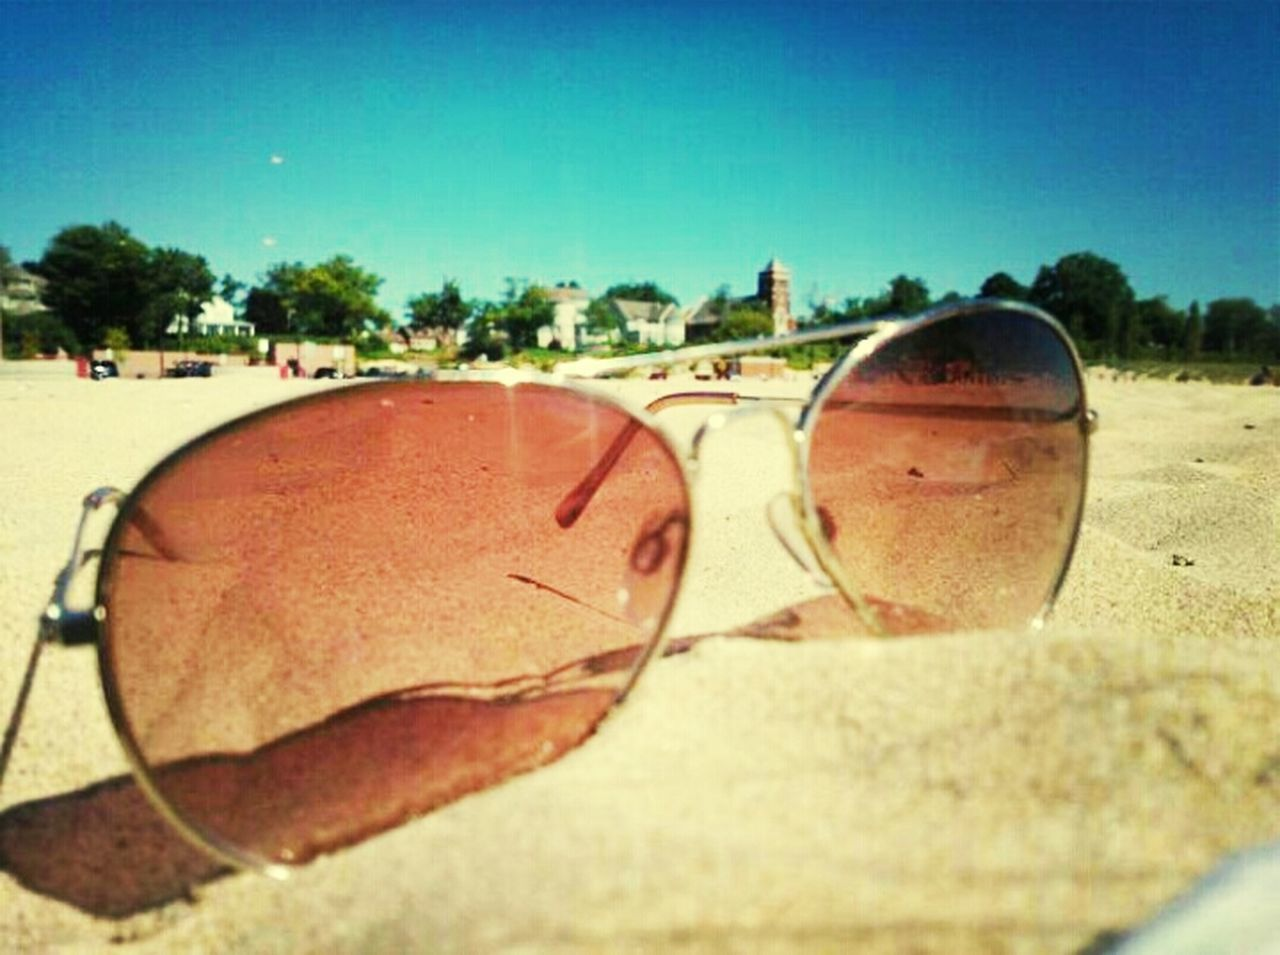 sunglasses, sand, reflection, beach, day, sky, no people, outdoors, sport, clear sky, close-up